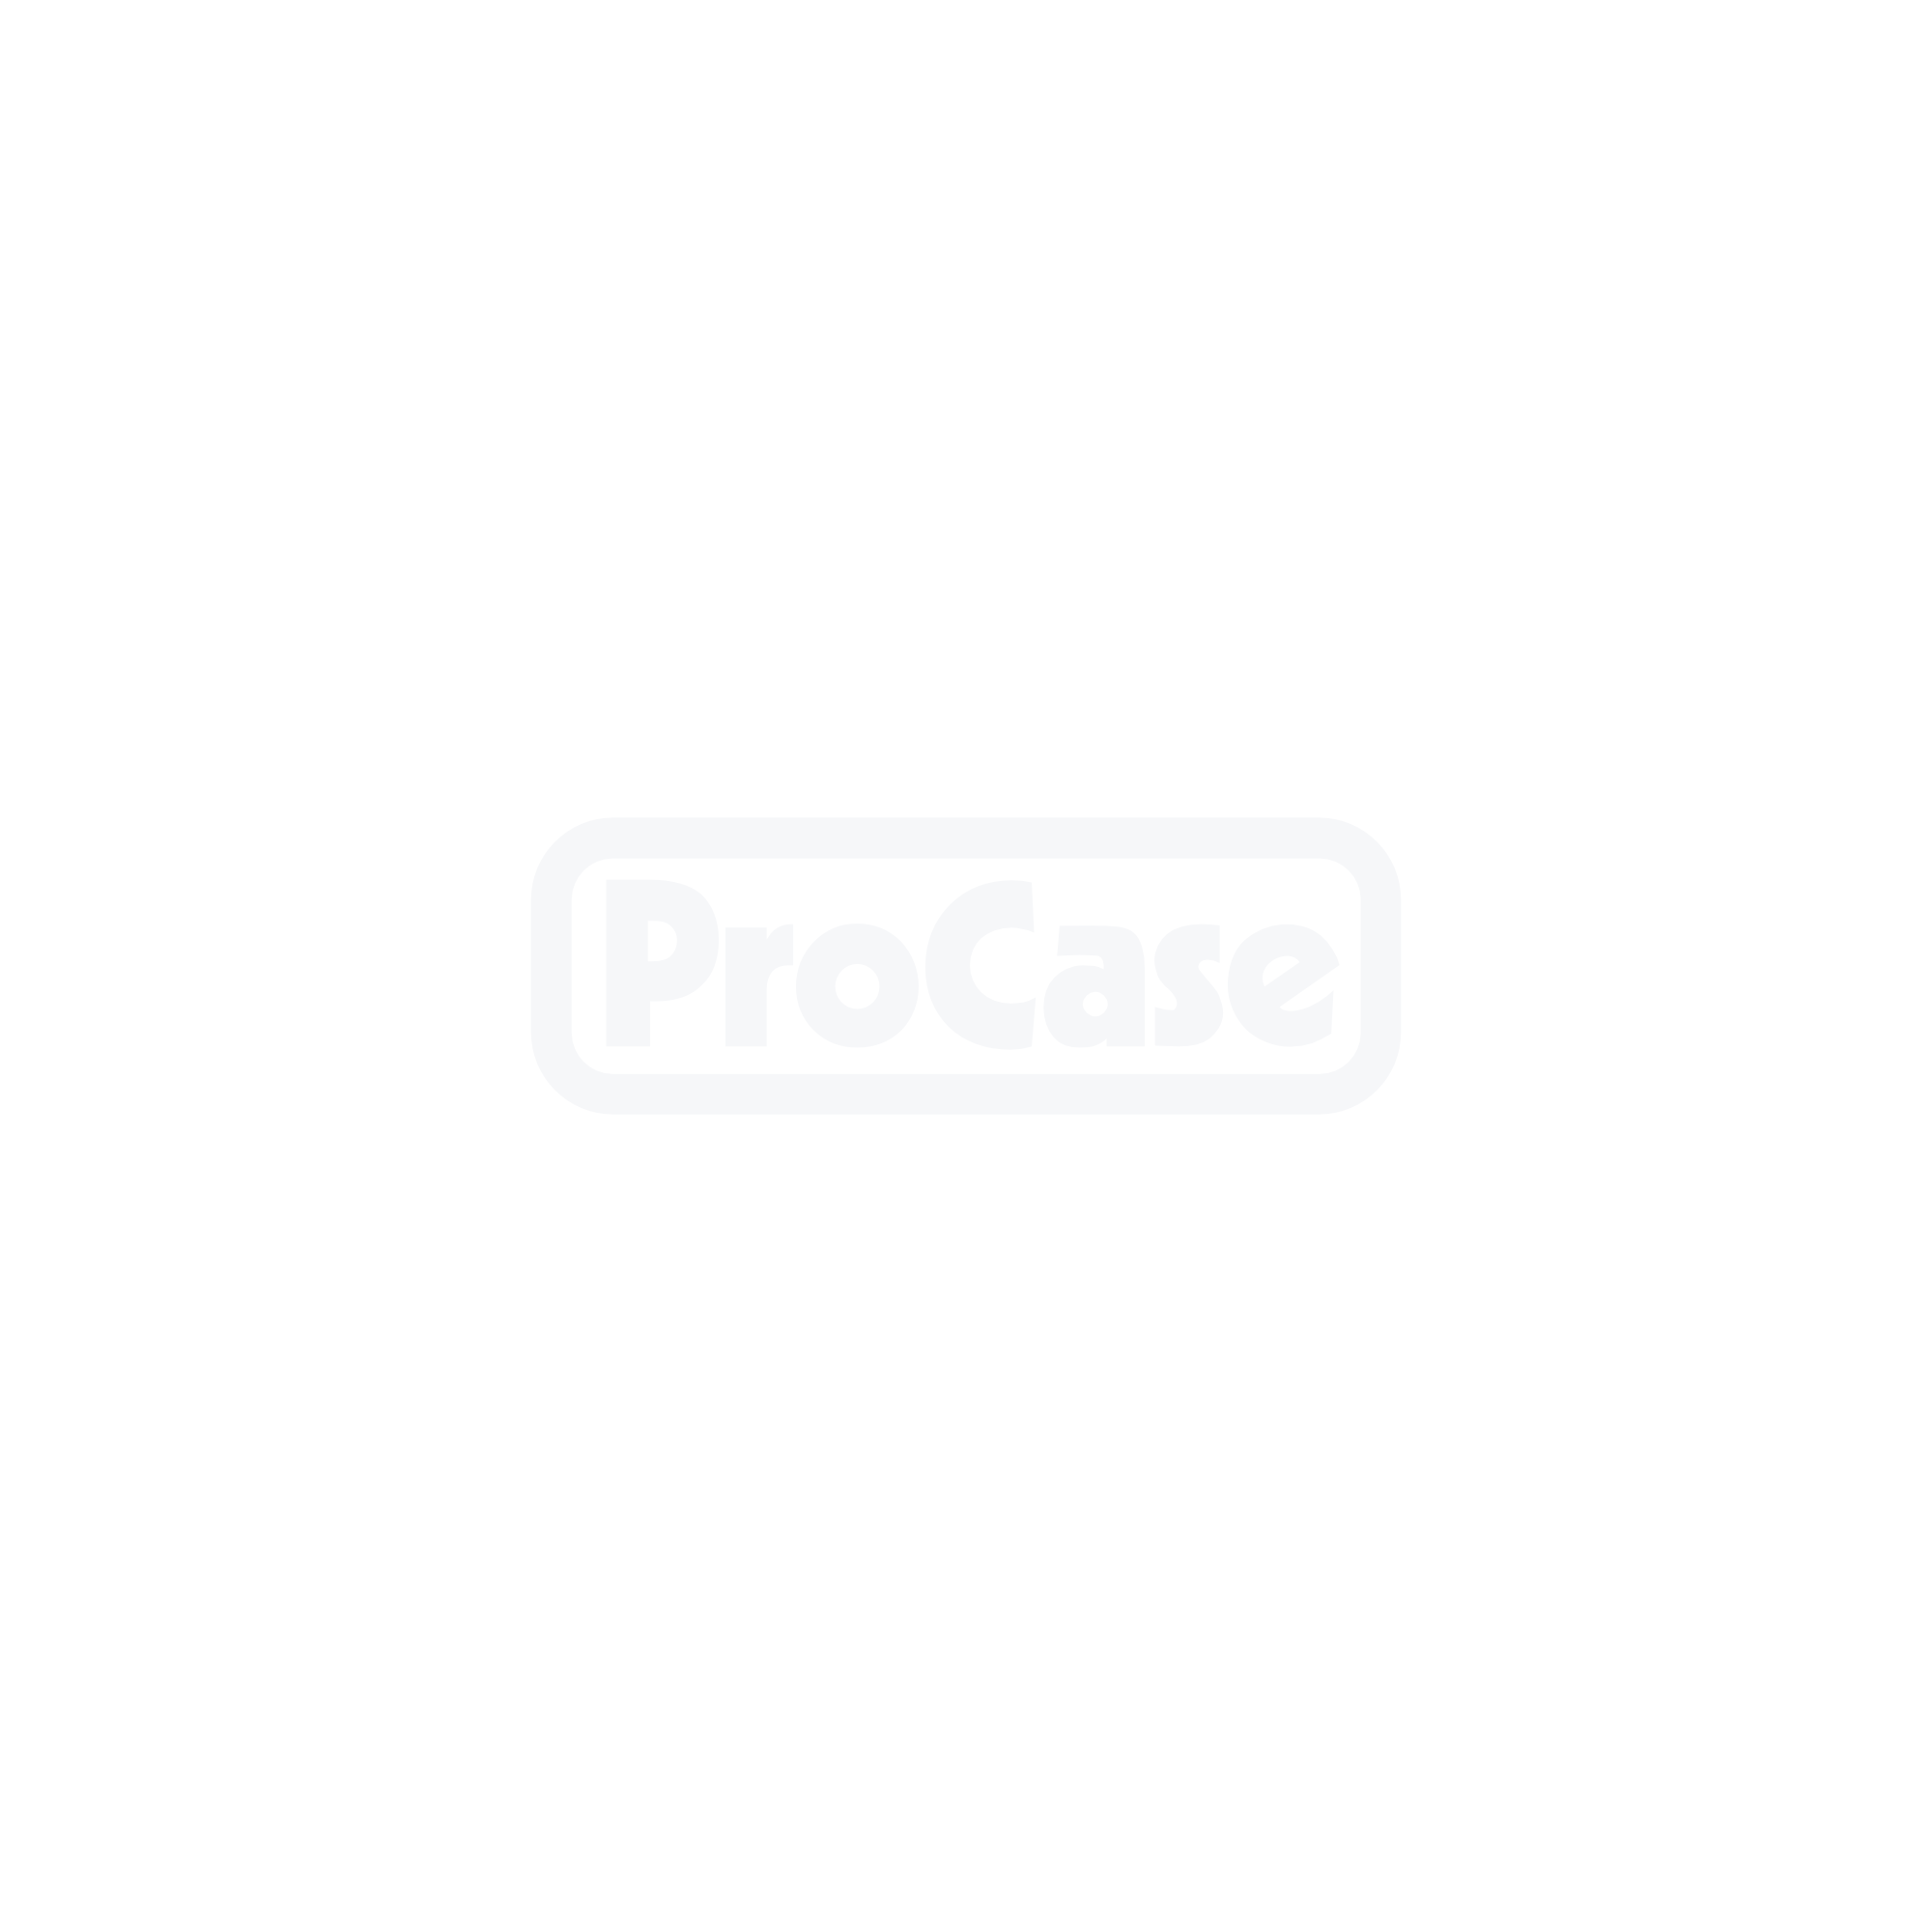 Flightcase für 6 Tensator Tensabarrier Advance Absperrsäulen 3